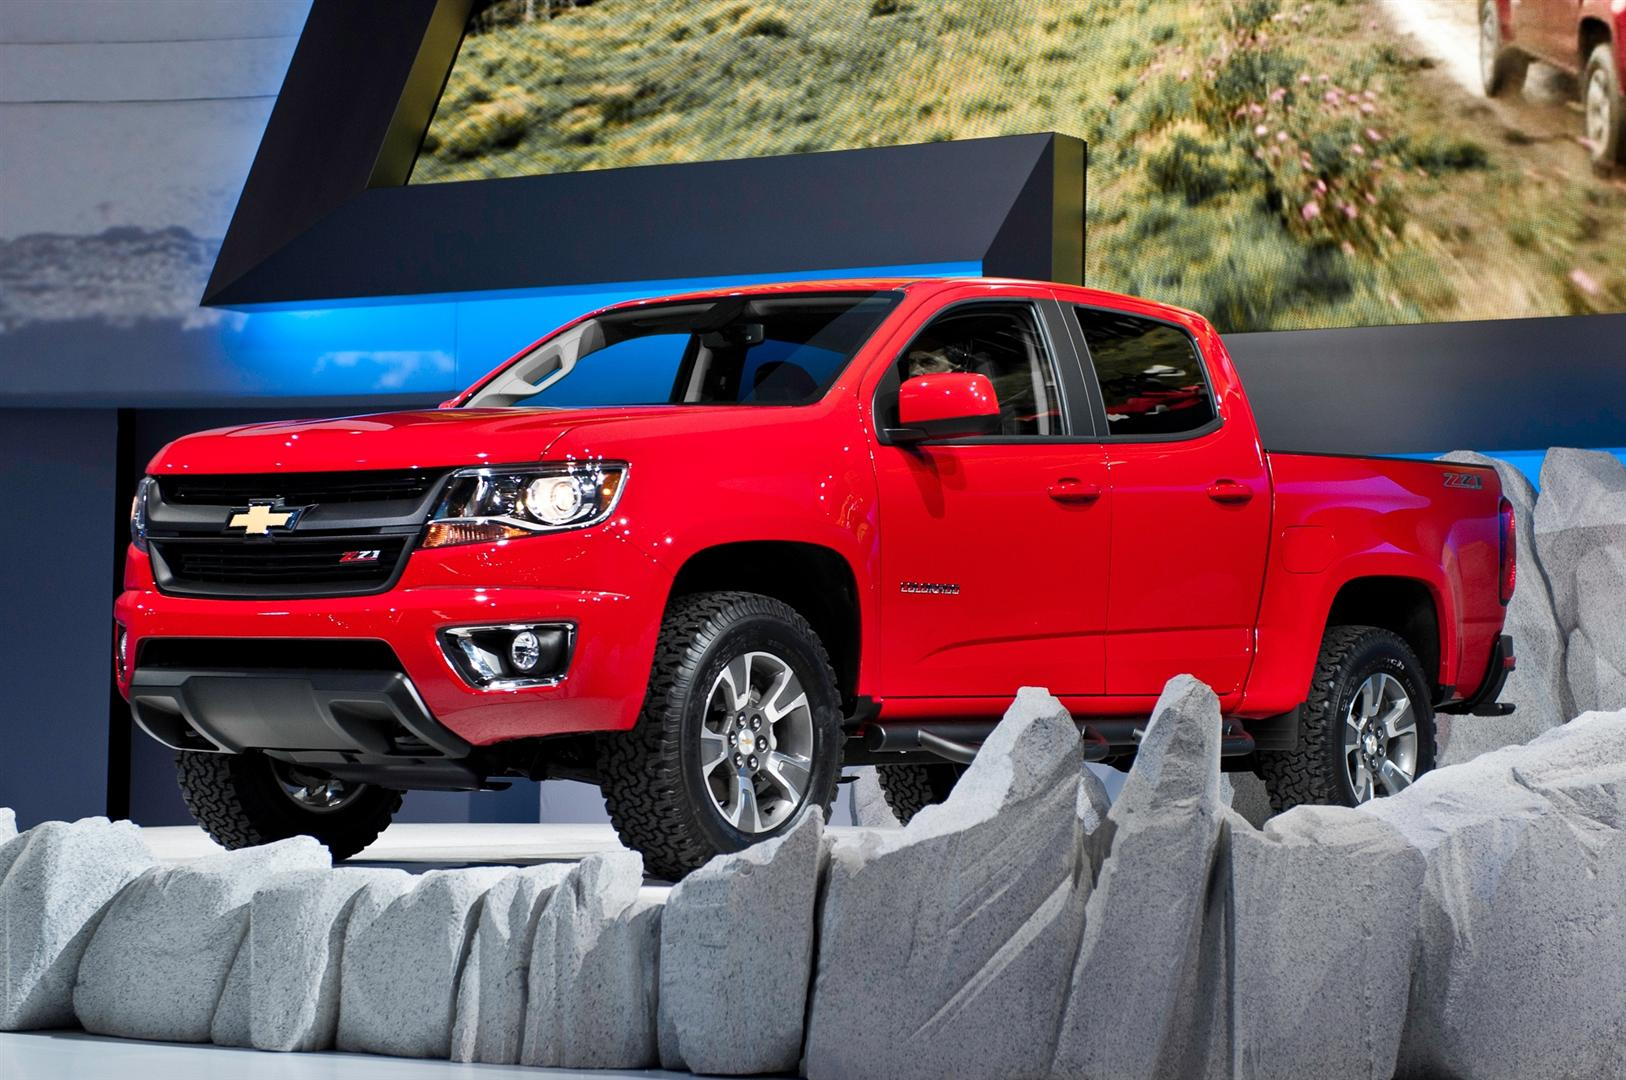 2018 Chevy Colorado Crew Cab Subwoofer Box